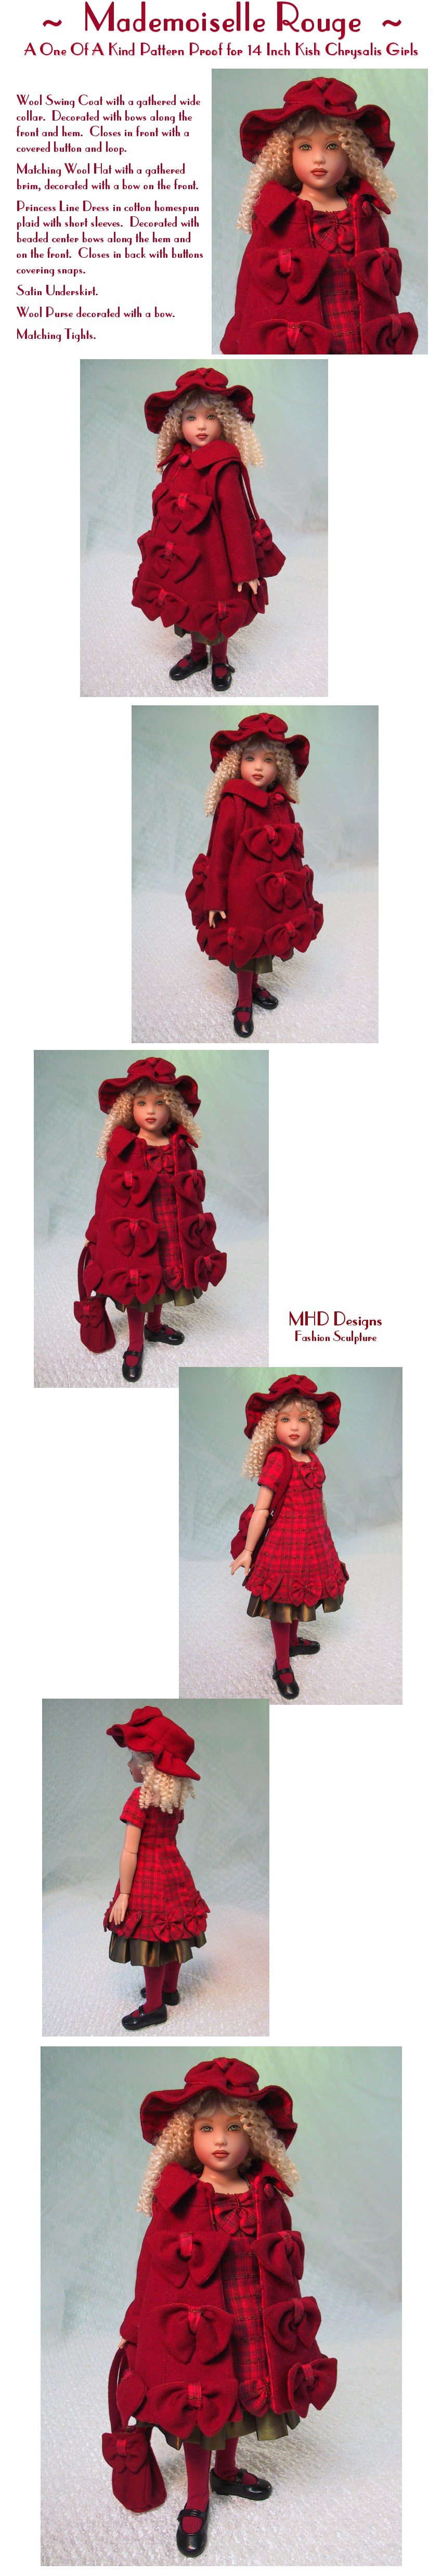 Maiden In Red - a One Of A Kind Pattern Proof by MHD Designs - High Resolution Photographs, your patience is appreciated!